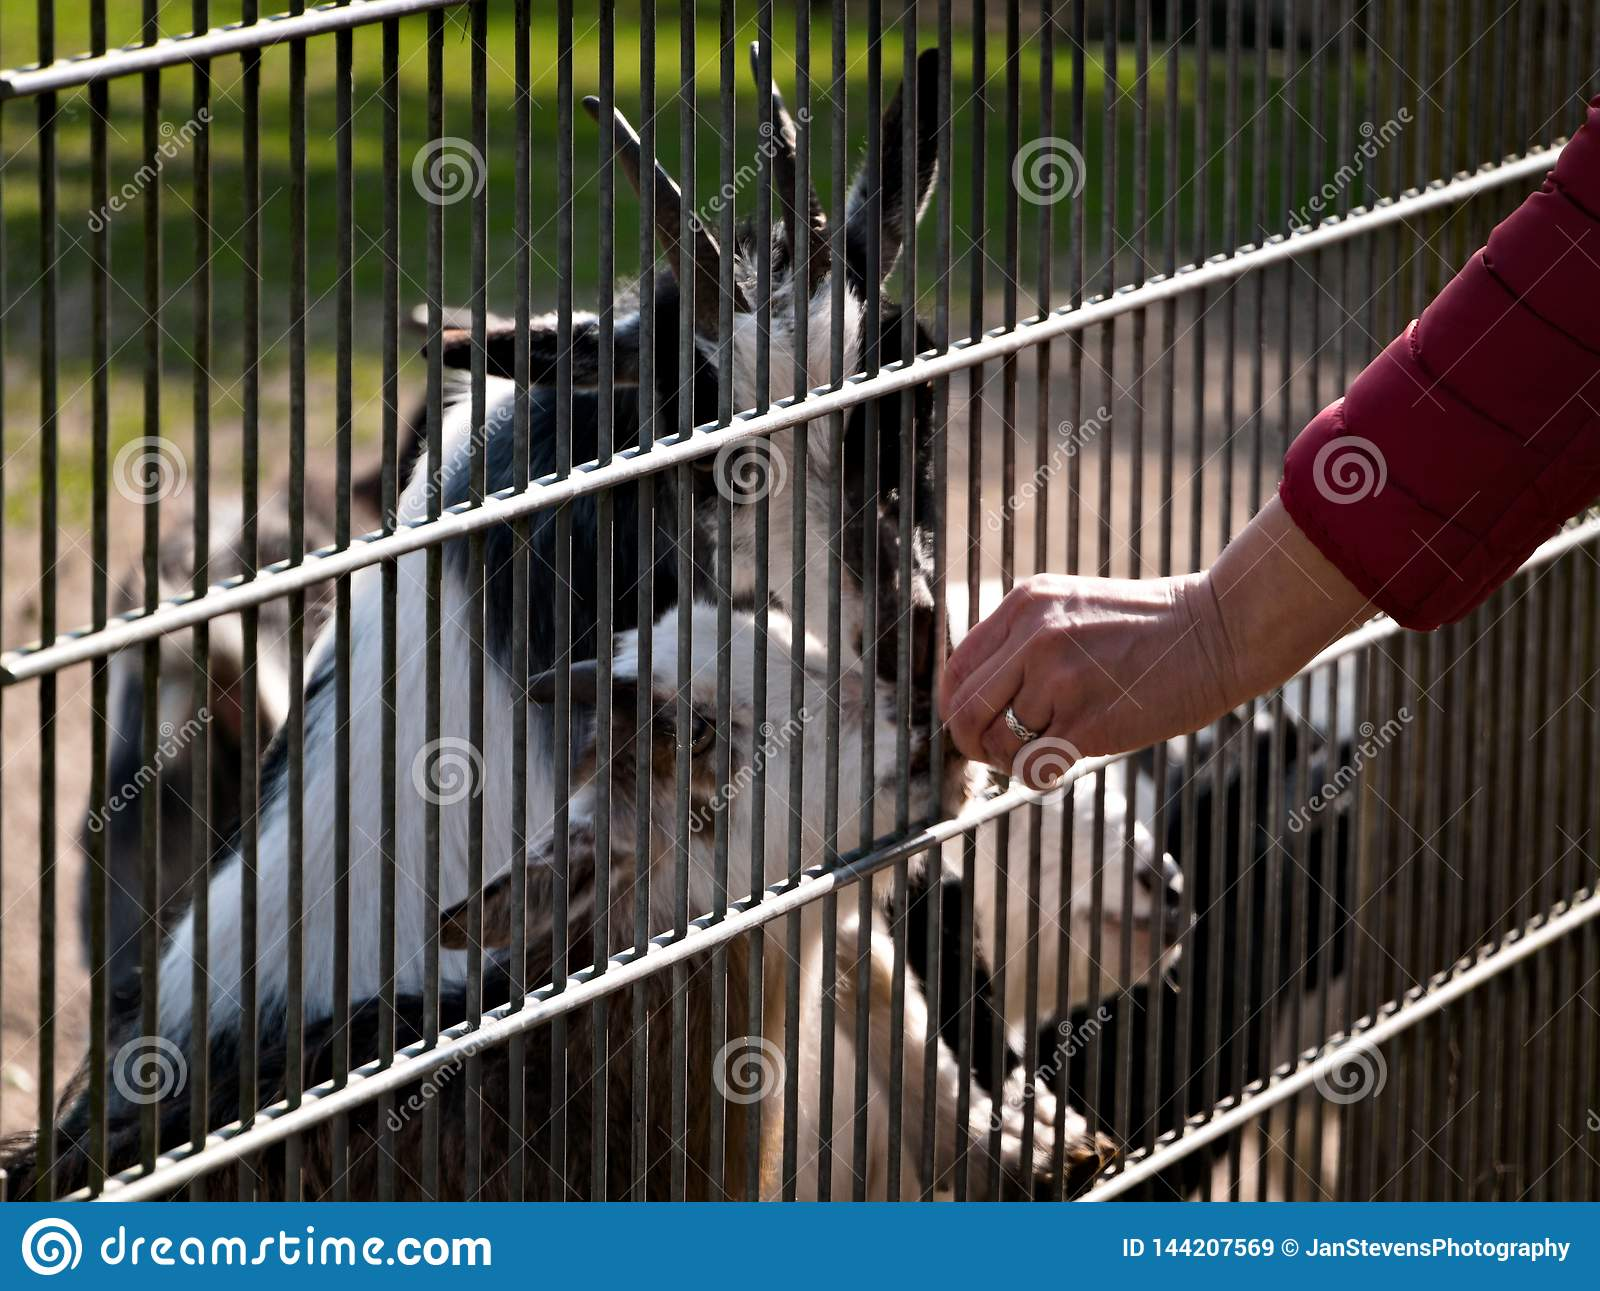 Day at the zoo stock image  Image of activity, animals - 144207569